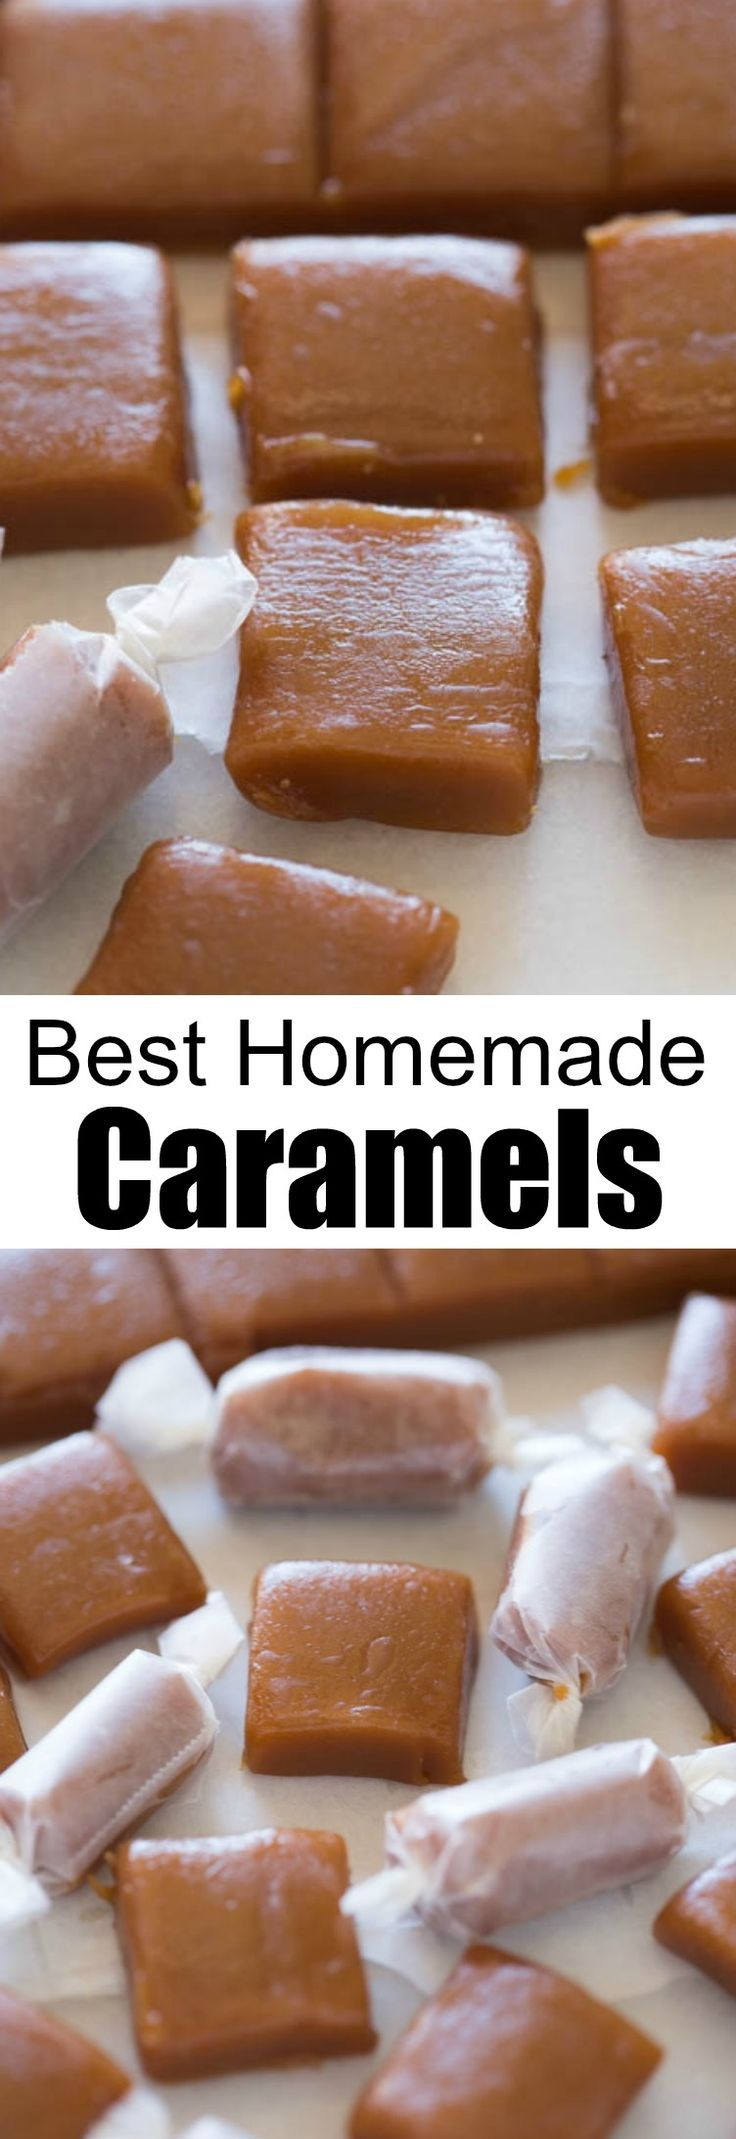 Homemade caramels are perfectly soft and chewy and so easy to make! | tastesbetterfromscratch.com via @betrfromscratch #christmas #best #caramels #candy